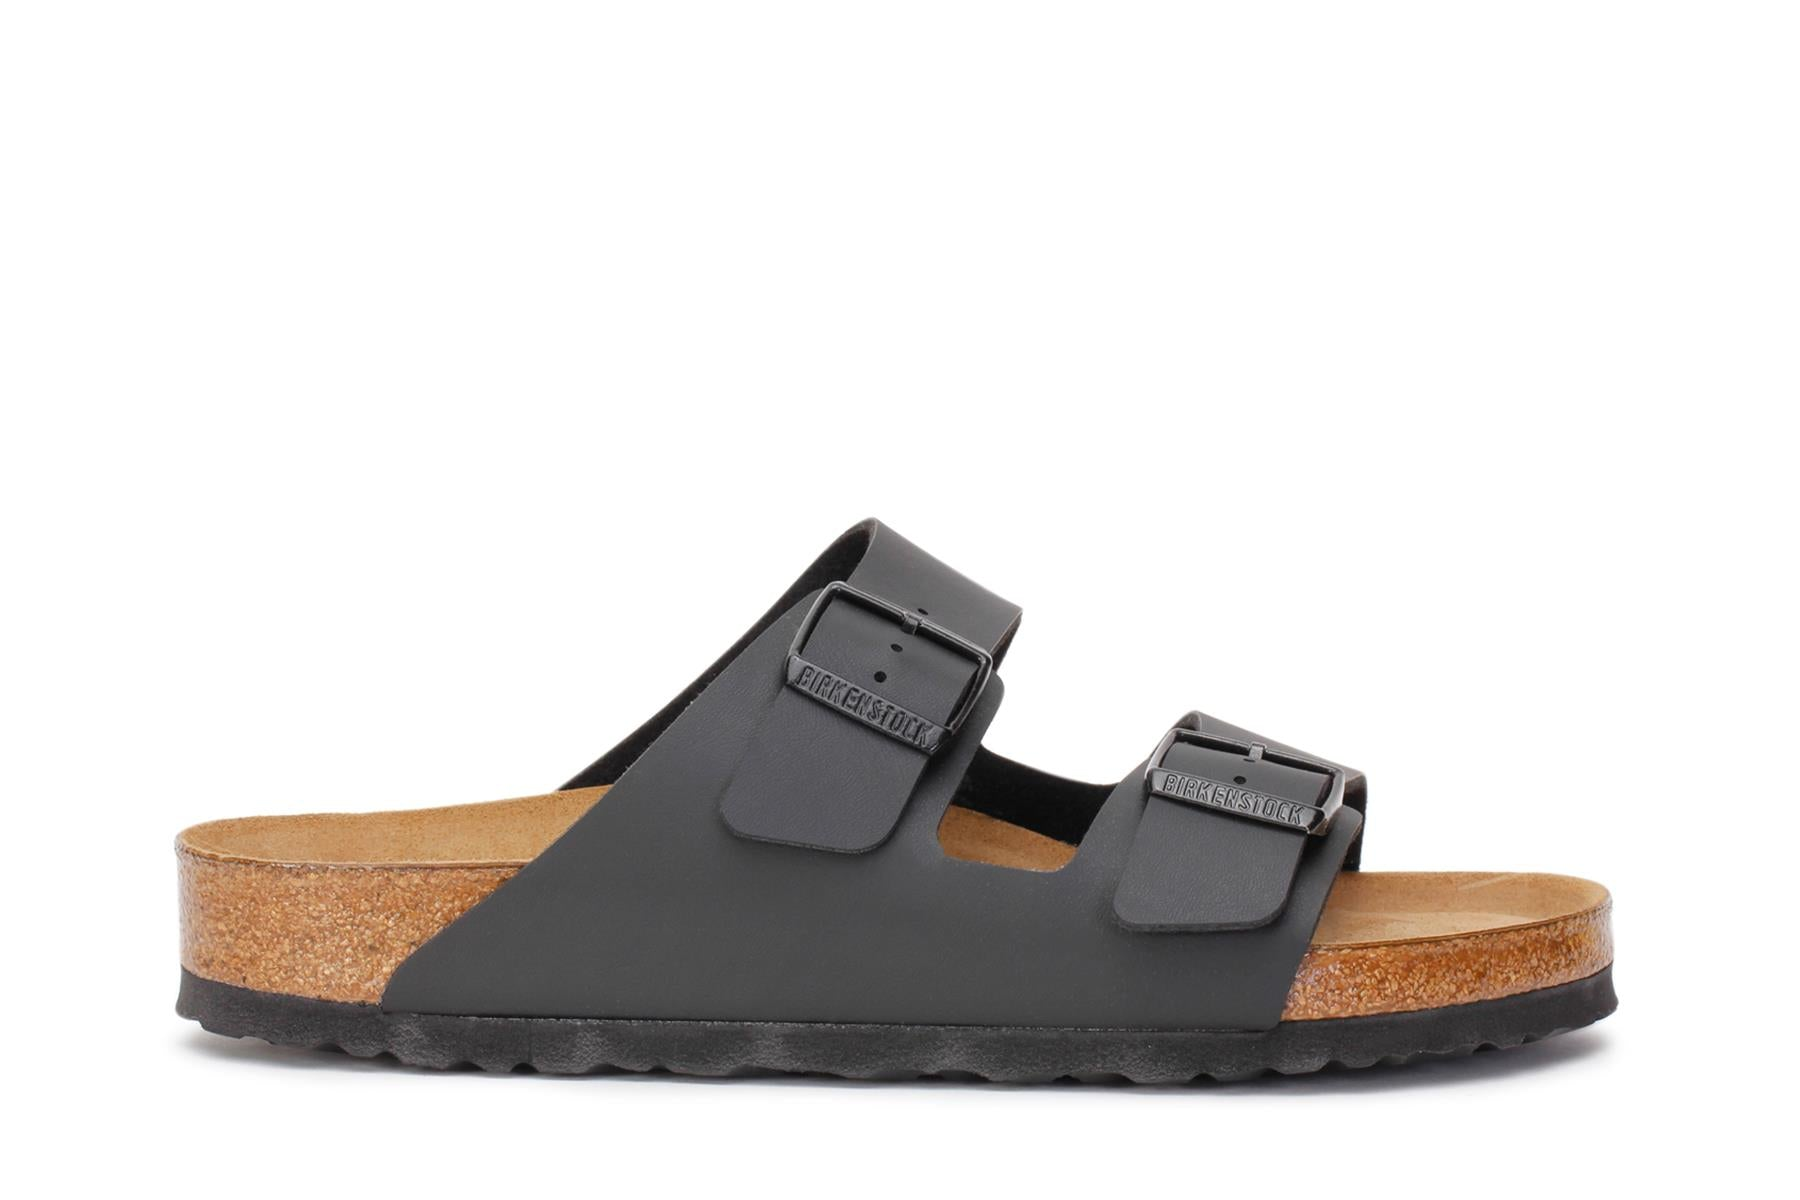 birkenstock-mens-slide-sandals-arizona-bs-soft-footbed-black-birko-flor-551251-main